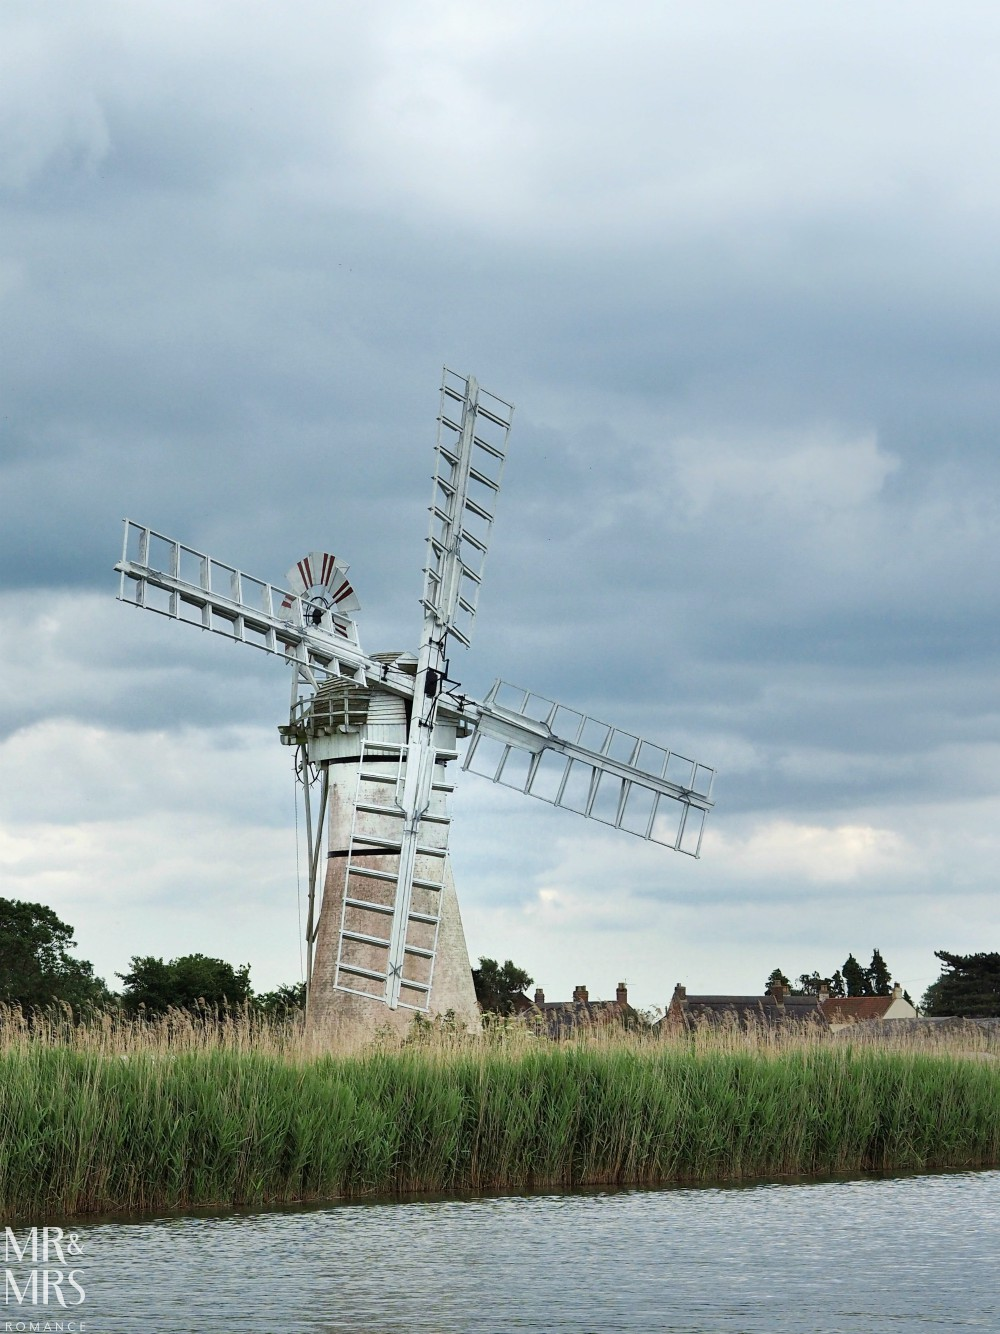 Boating holidays England - Norfolk Broads boat hire. Windmill